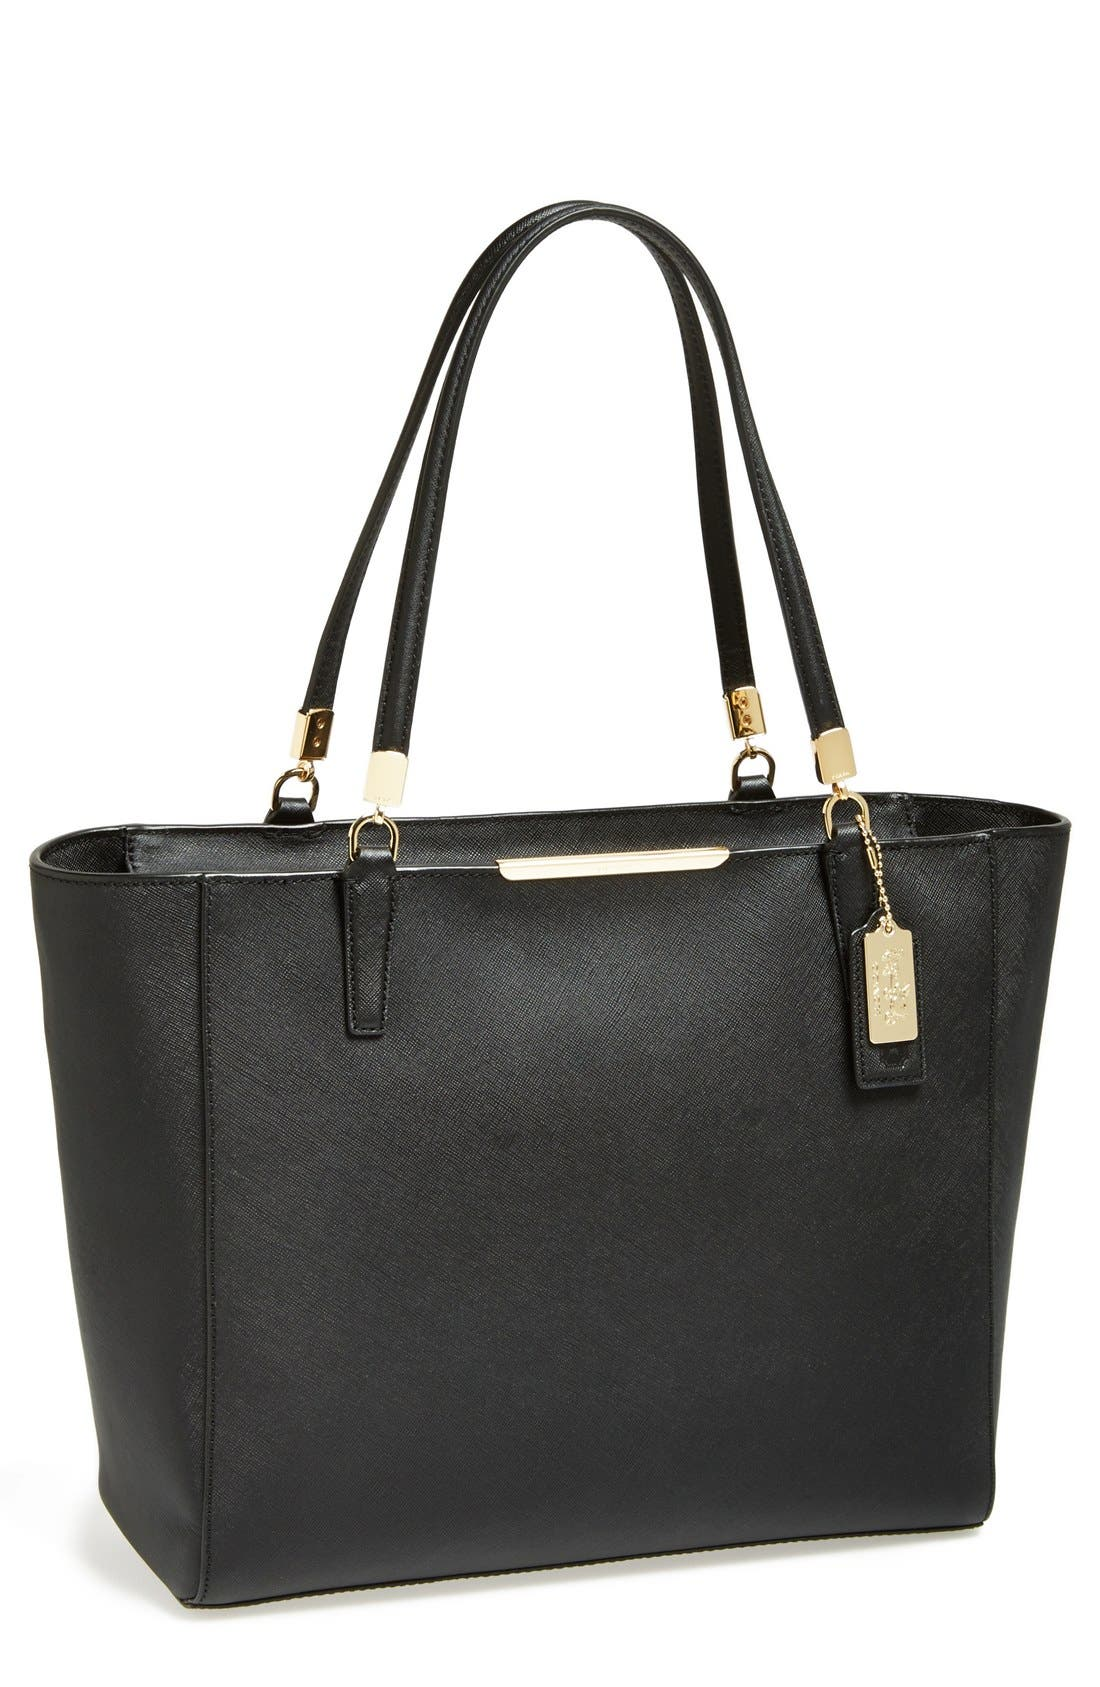 Alternate Image 1 Selected - COACH 'Madison' Saffiano Leather Tote